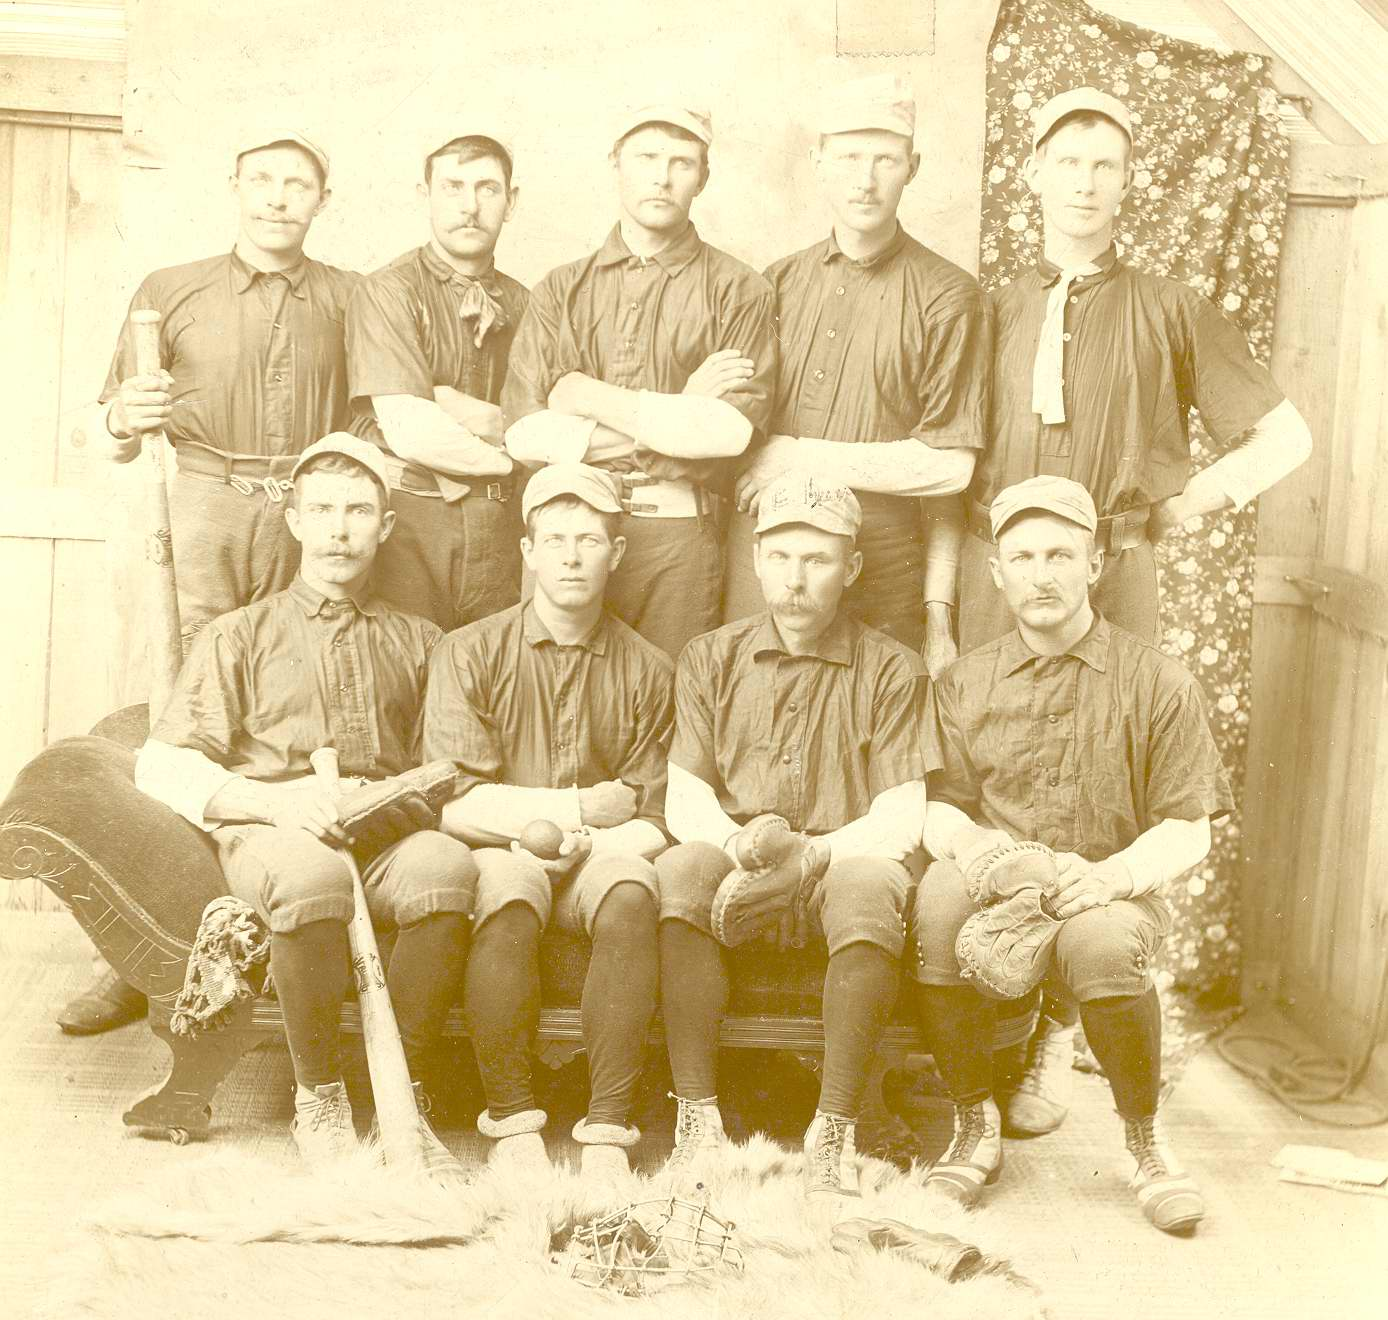 Aldenville Baseball Team - 1870 to 1890